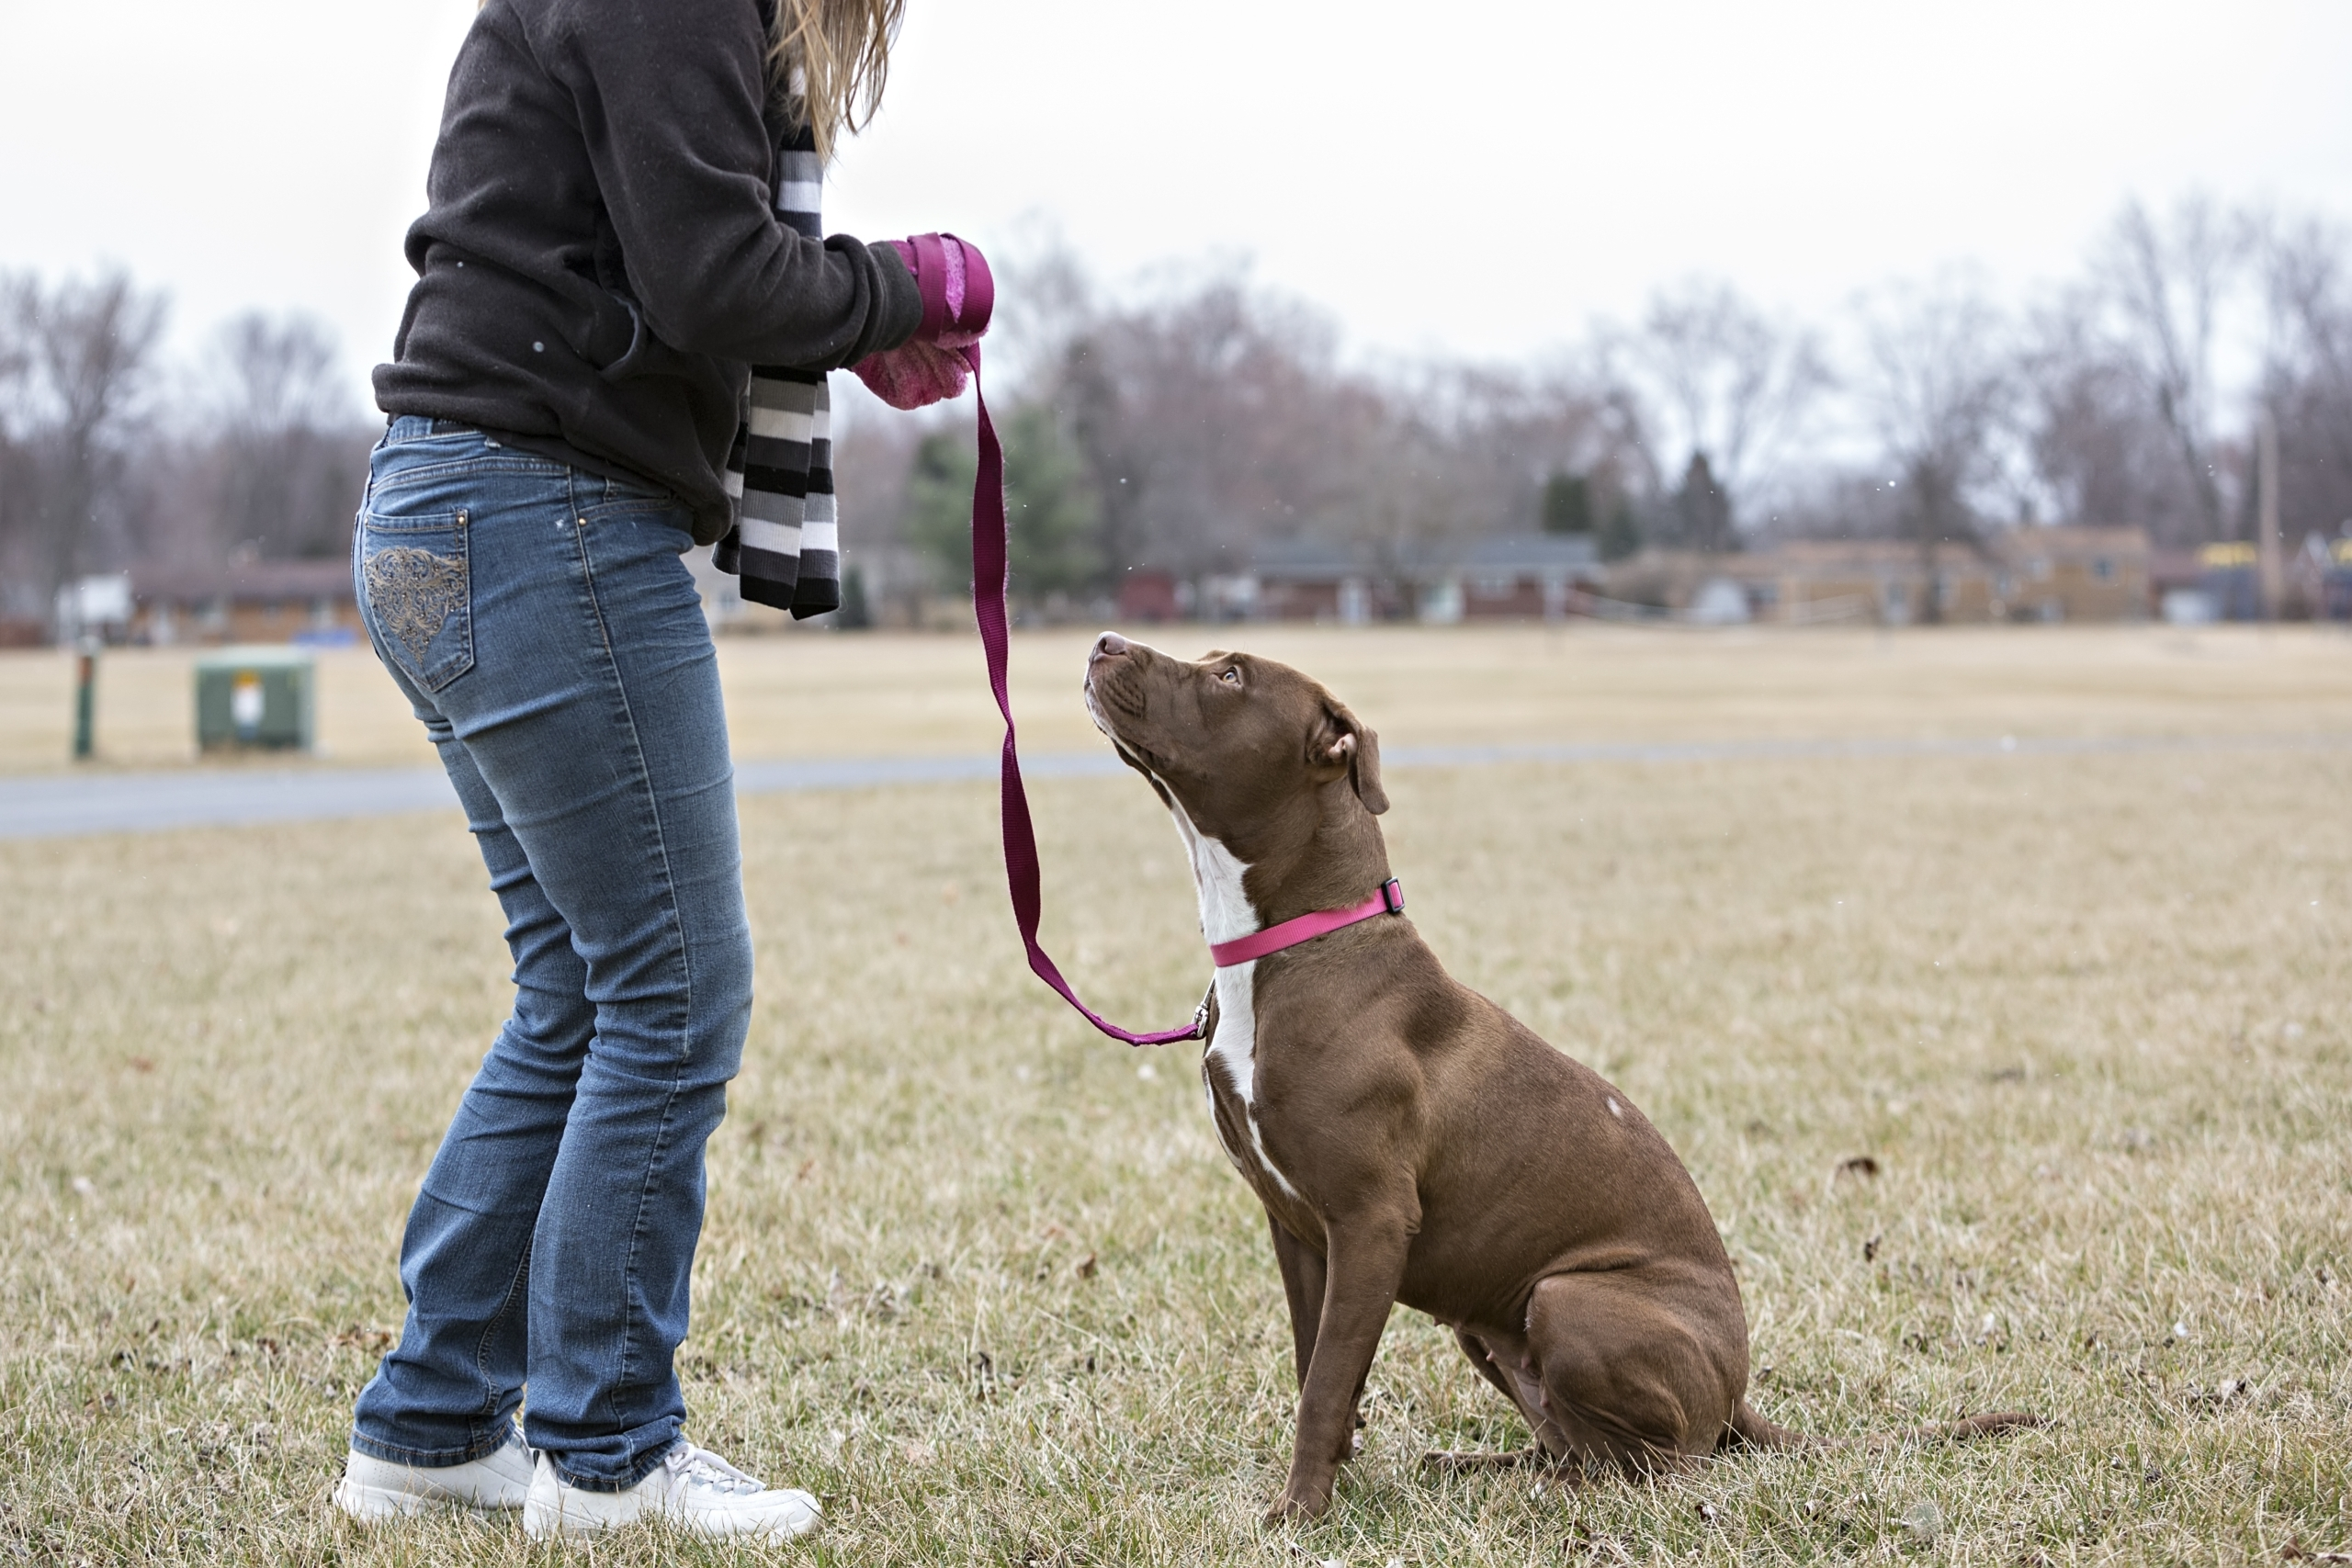 A woman trains her dog in a dog park